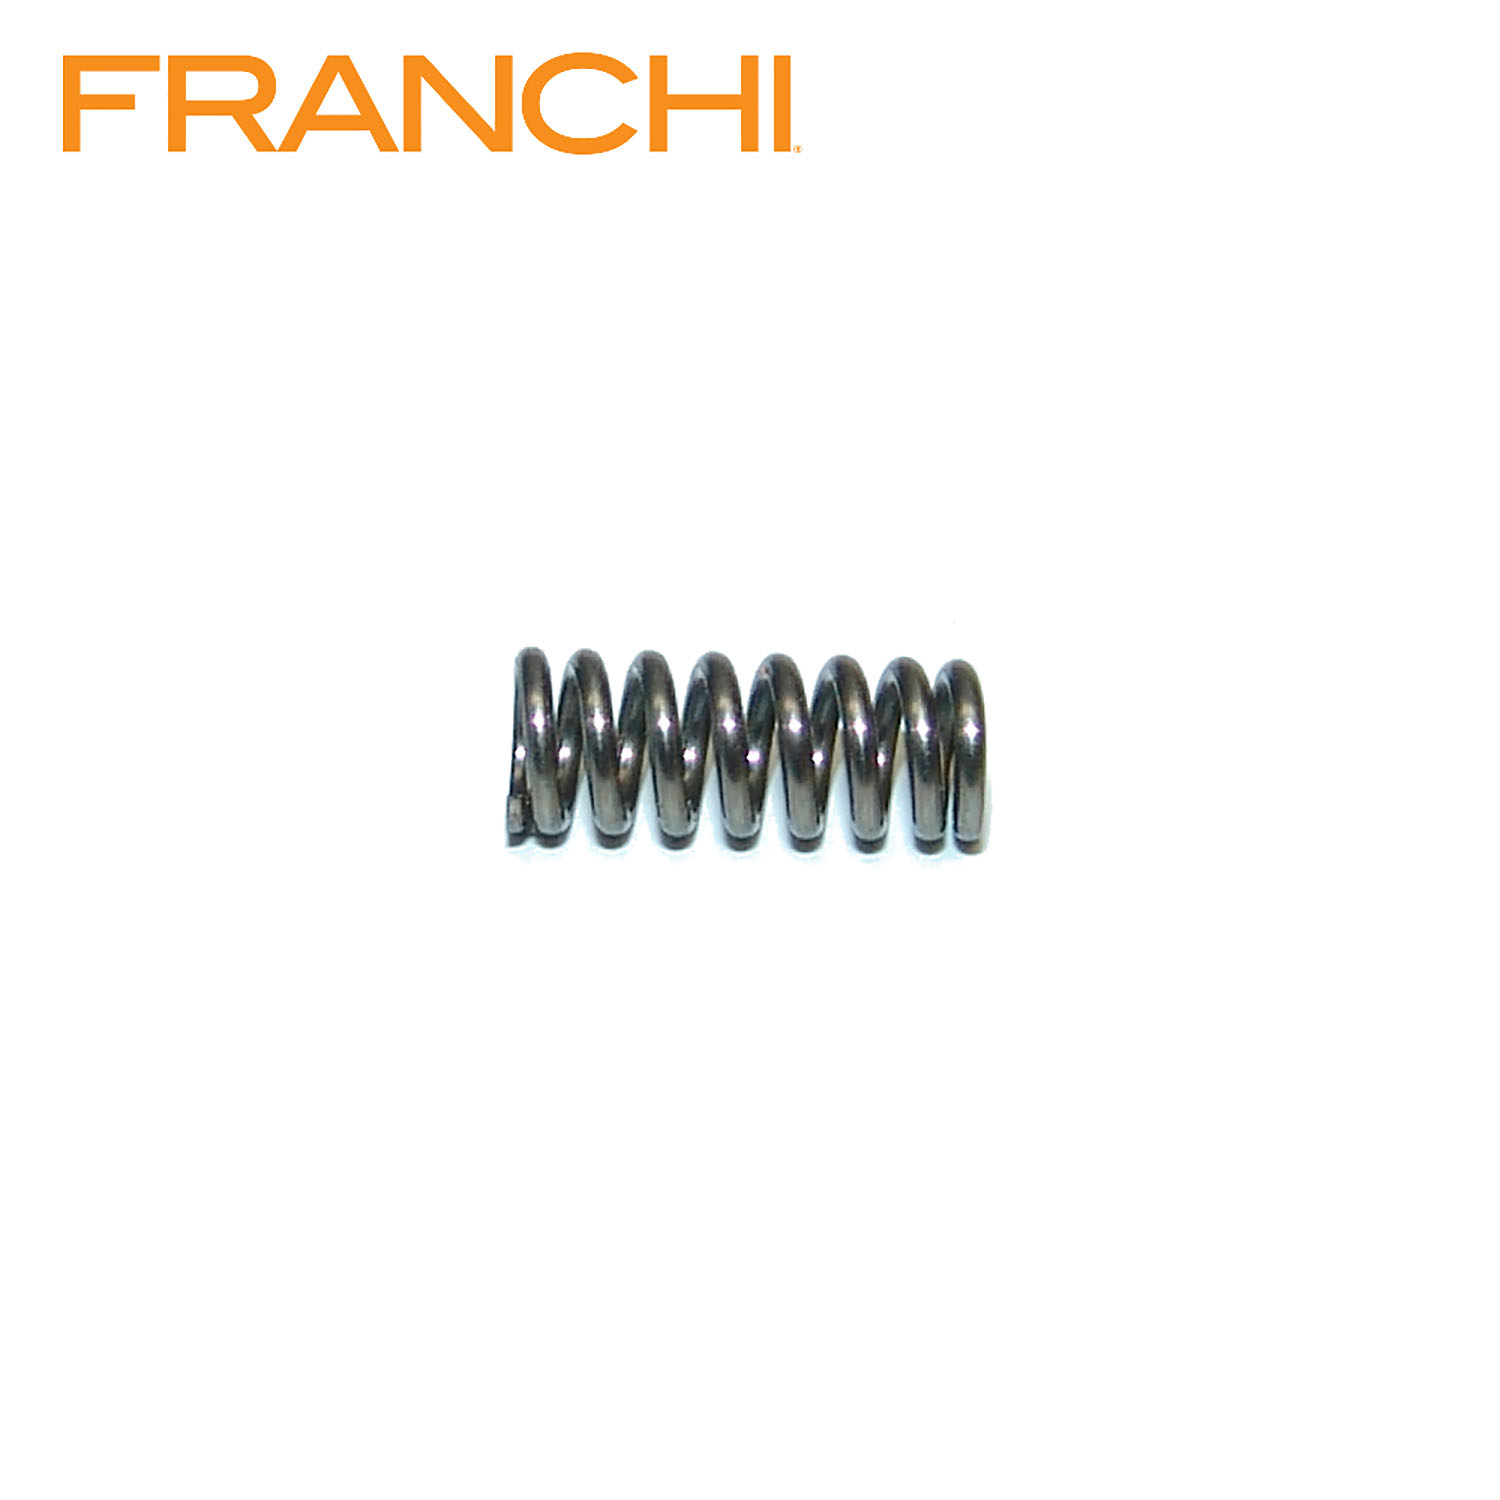 Franchi 48AL 20 Gauge Locking Block Lever Spring: MGW